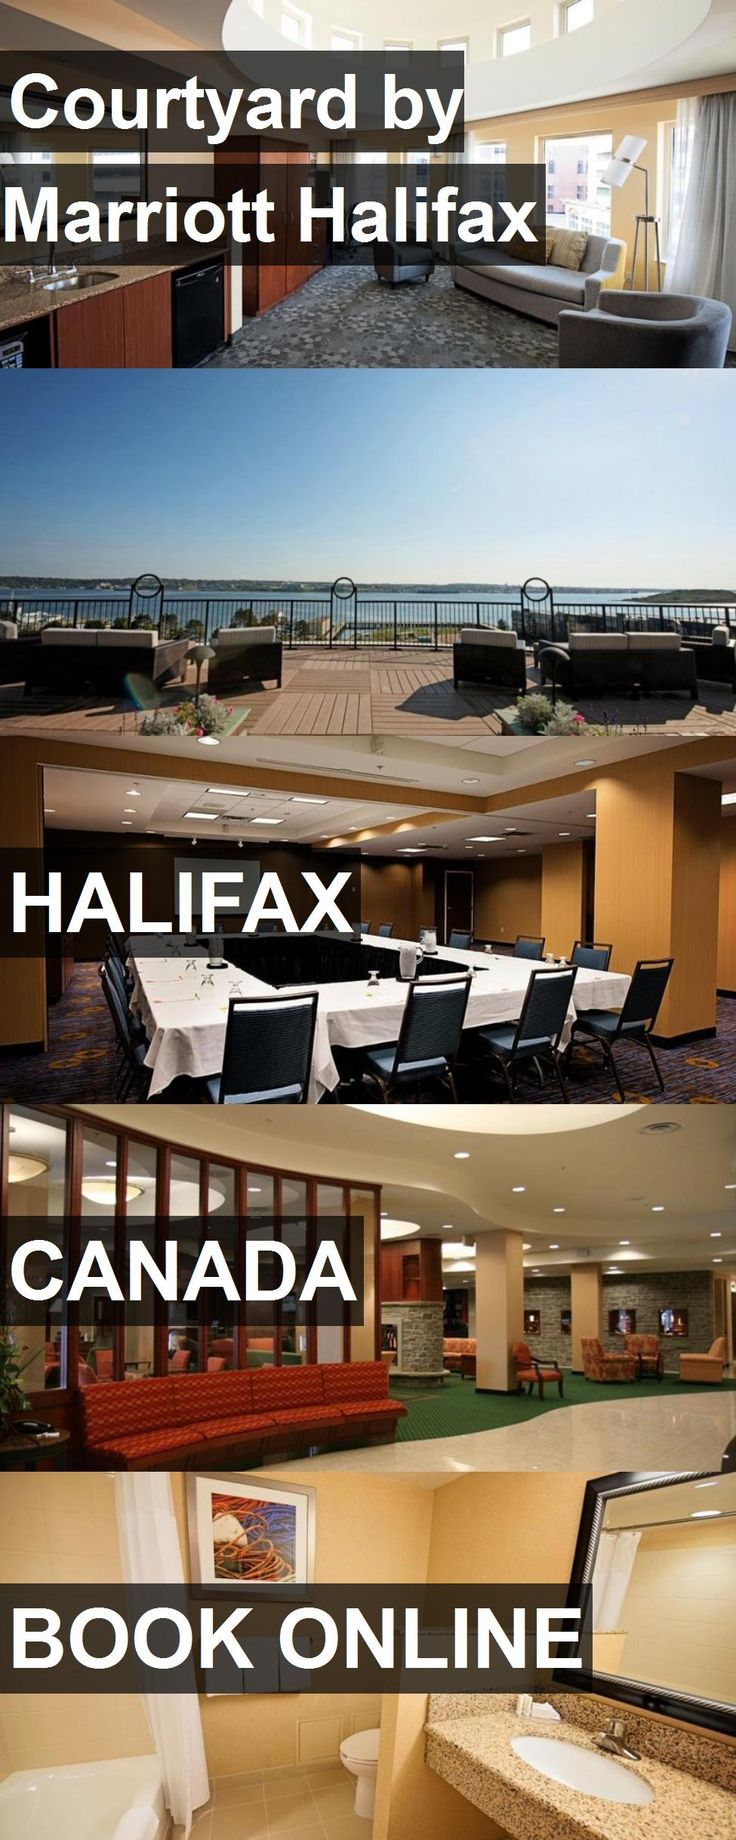 Hotel Courtyard By Marriott Halifax In Canada For More Information Photos